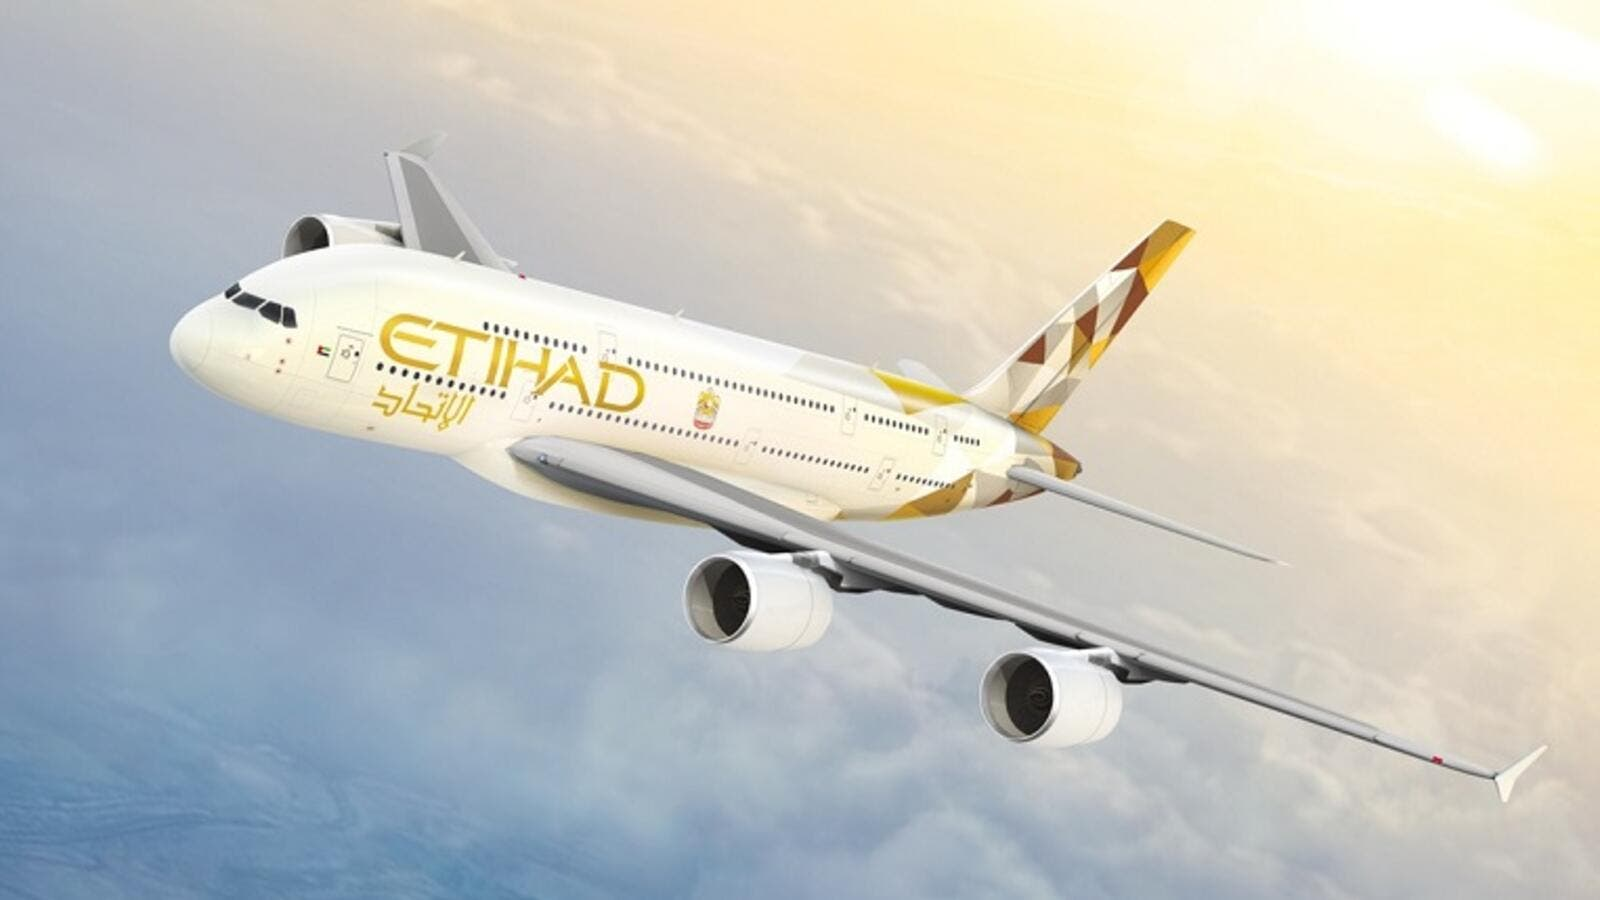 Etihad posts disappointing results for 2016. (File photo)